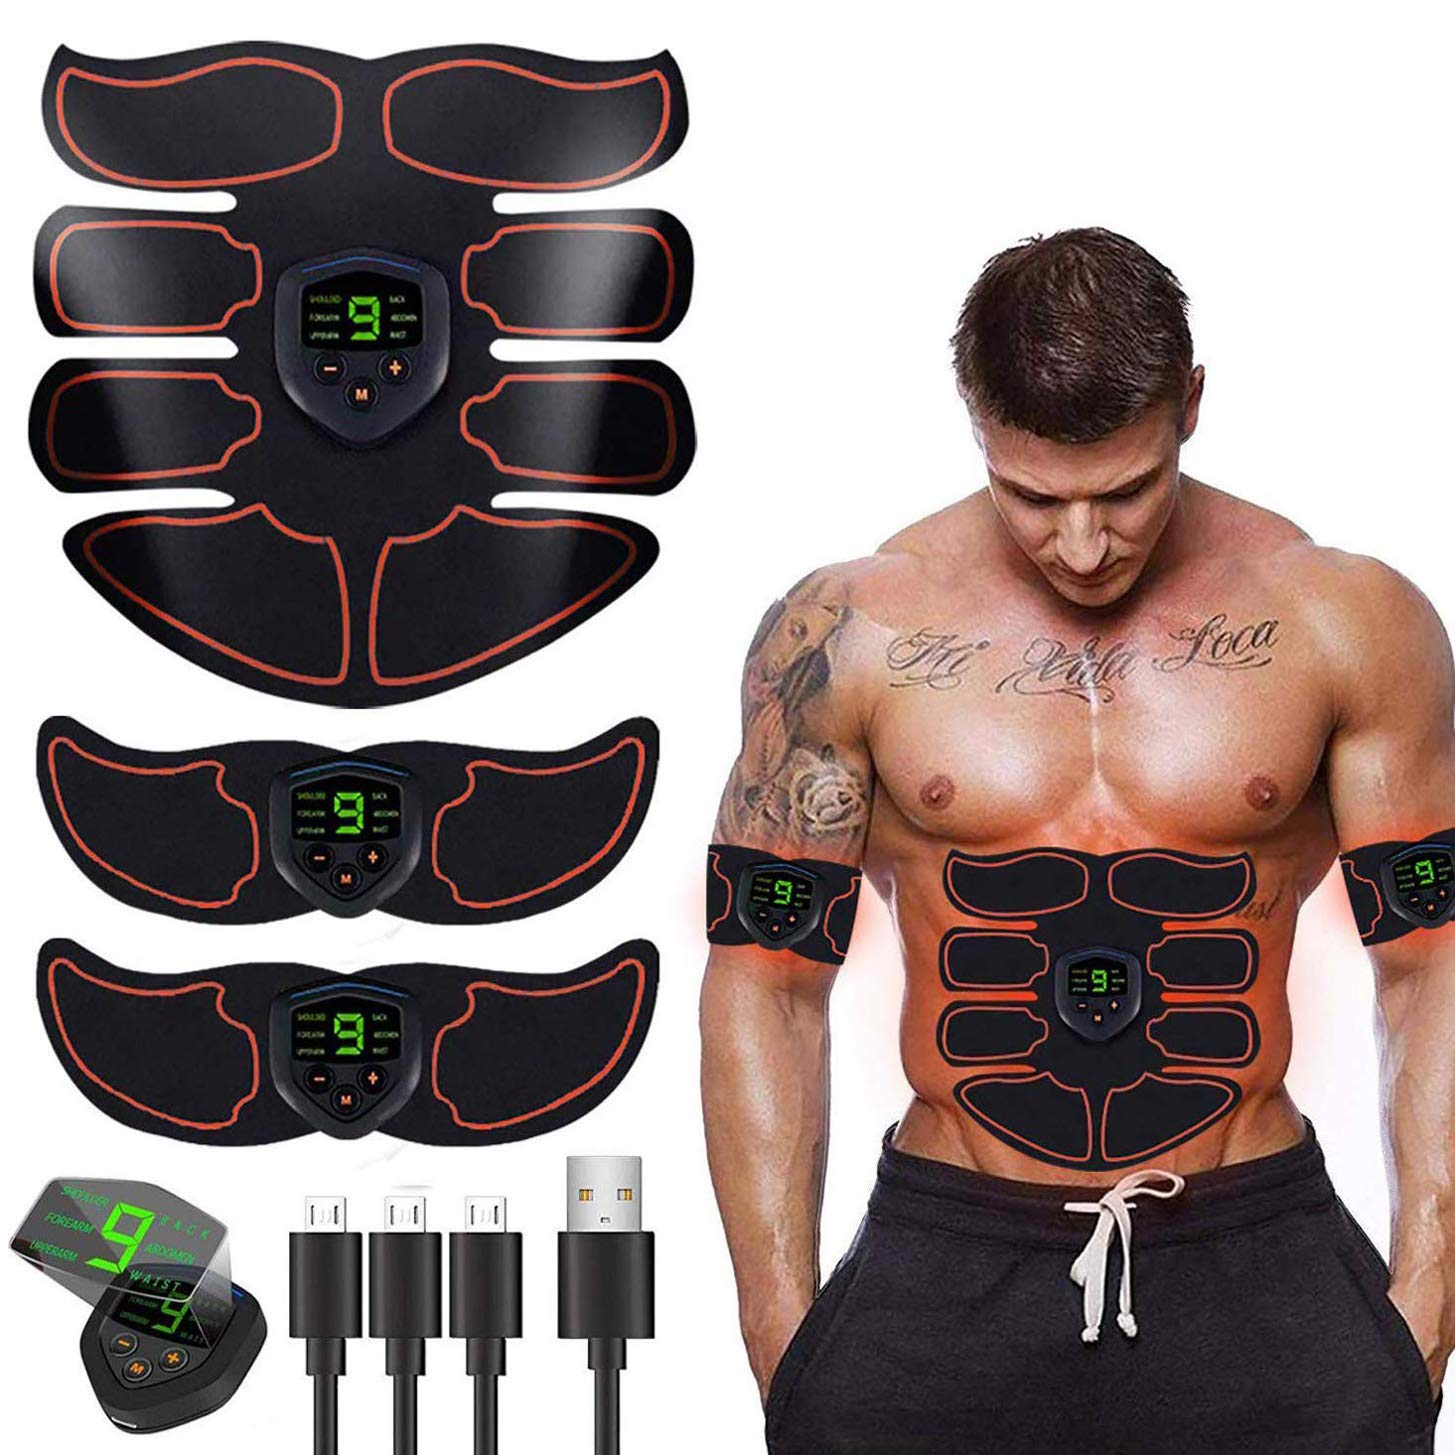 HAIJIXING ABS Stimulator Abs Muscle Toner EMS Portable Rechargeable Gym Workout Training and Home Office Fitness Toning Belt Equipment for Abdomen by SHENGMI (Image #1)